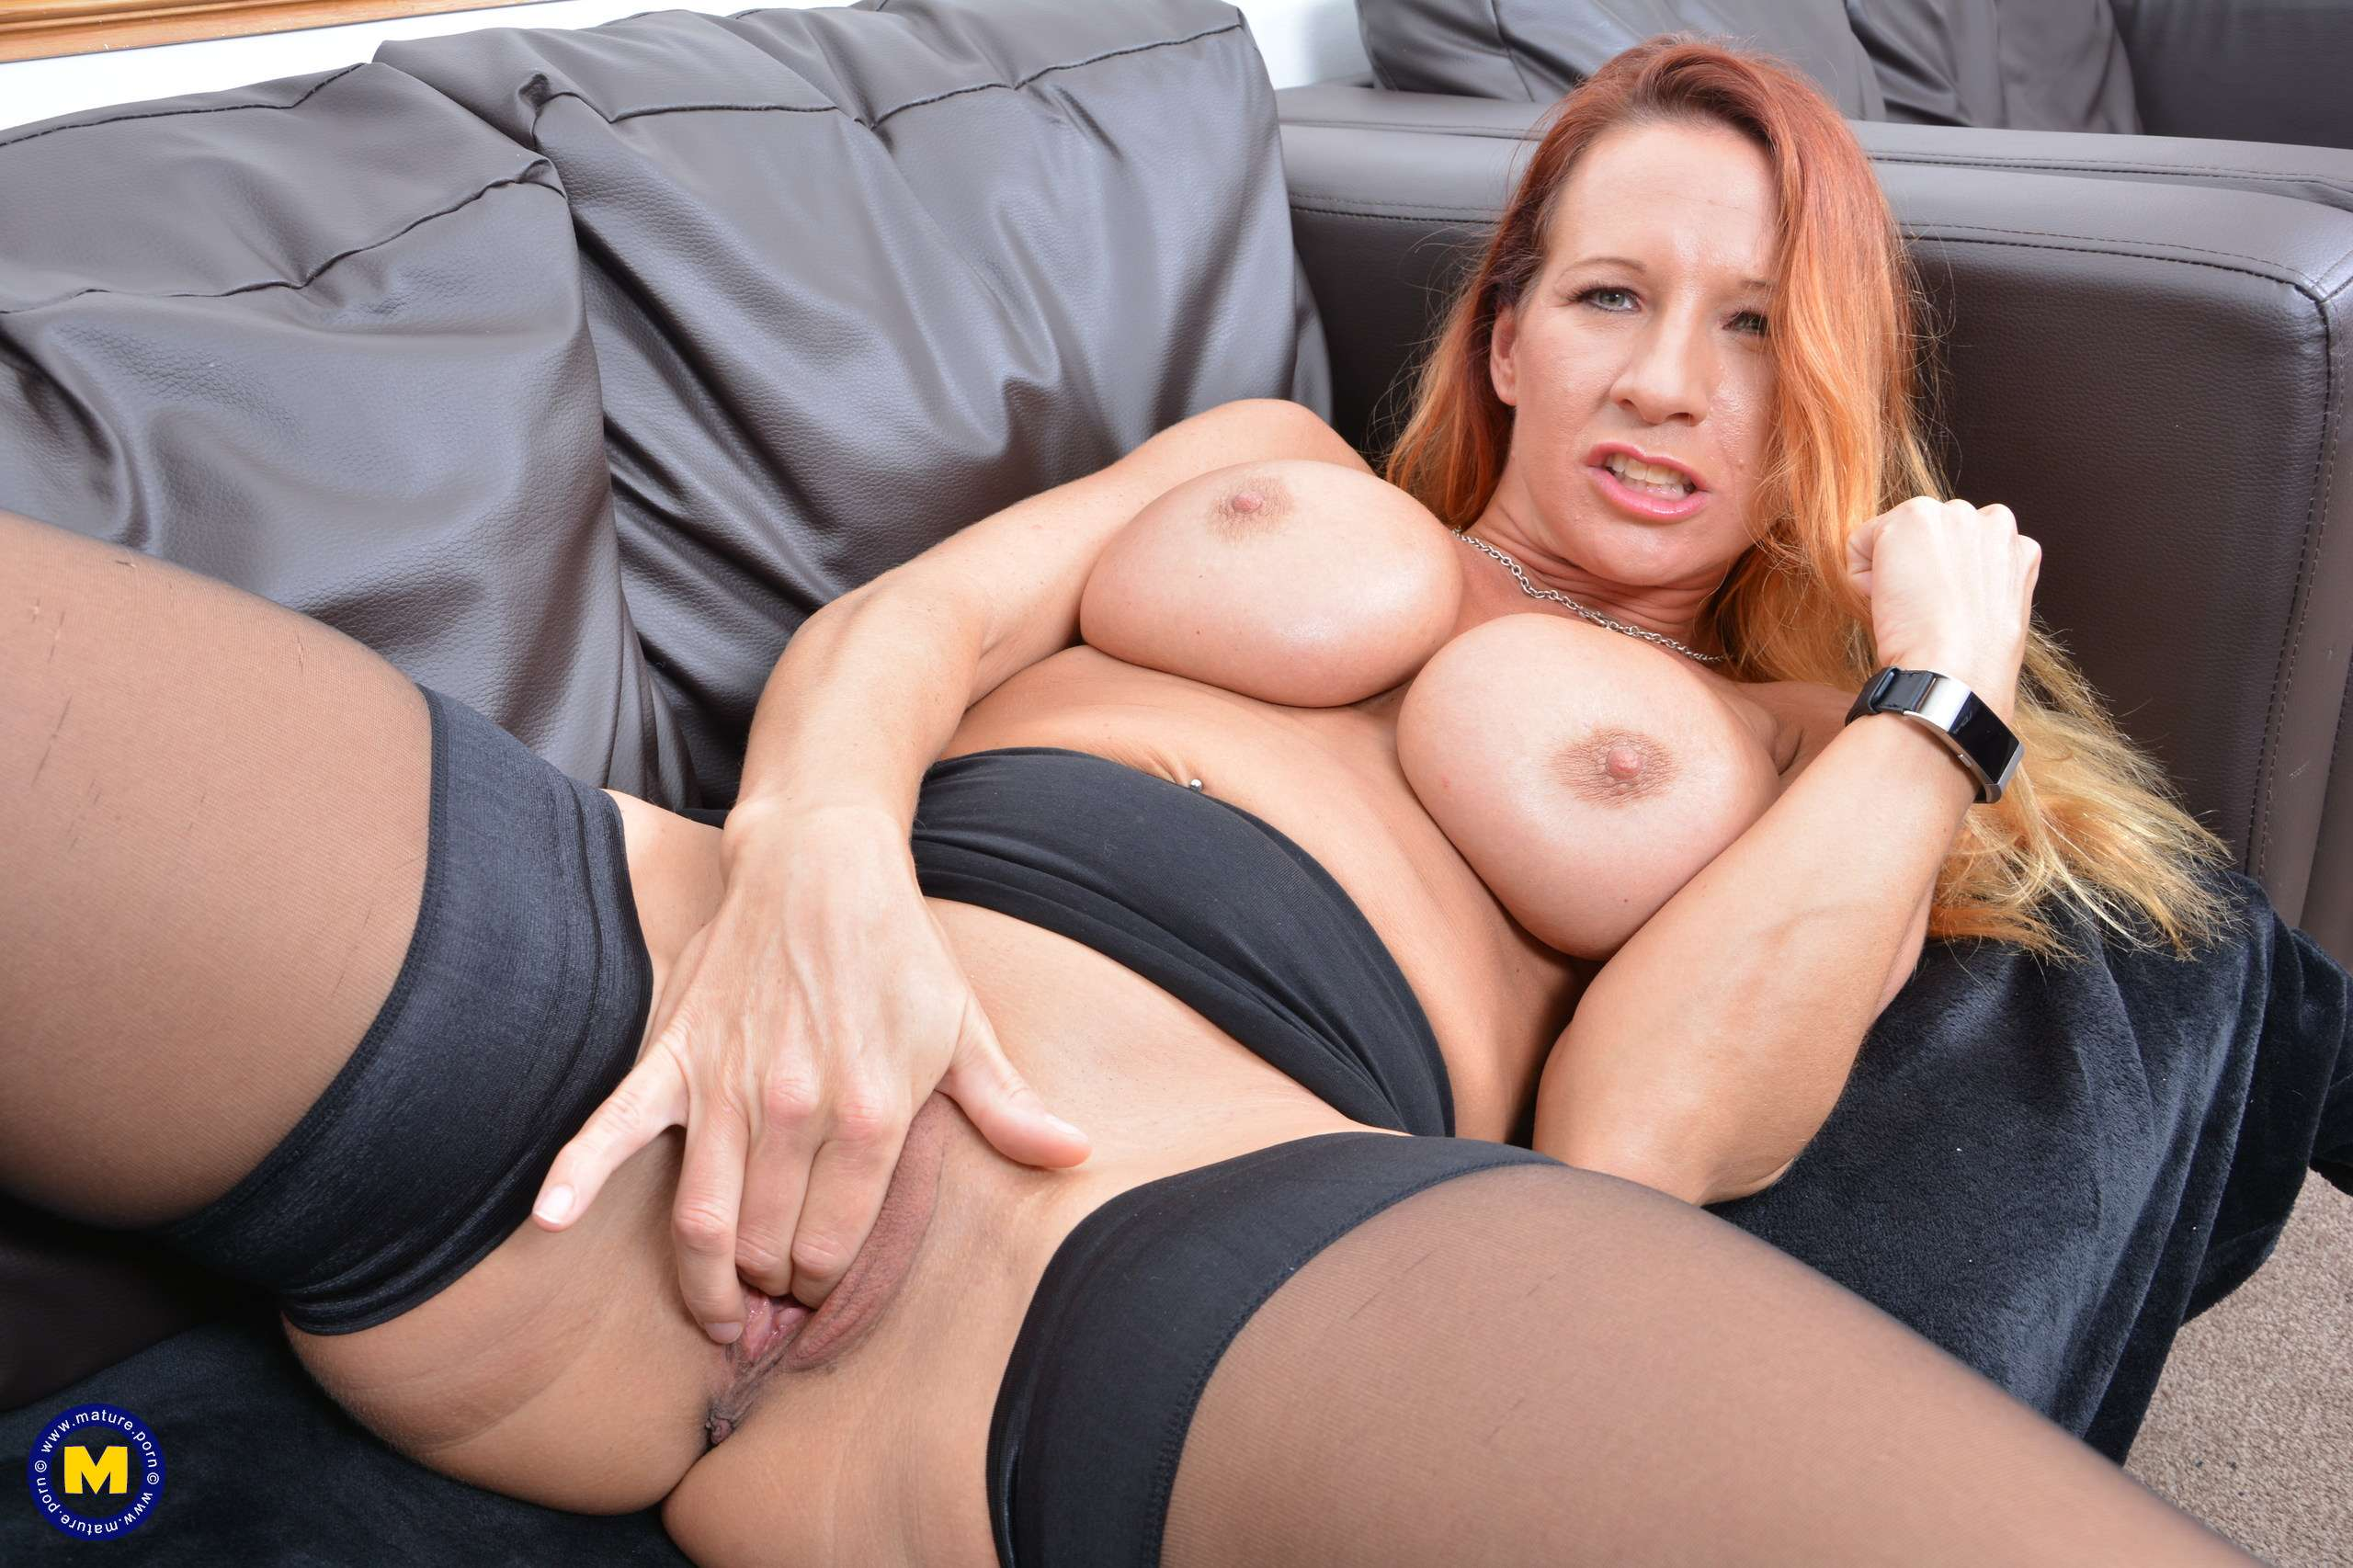 Naughty British MILF Faye plays with her pussy